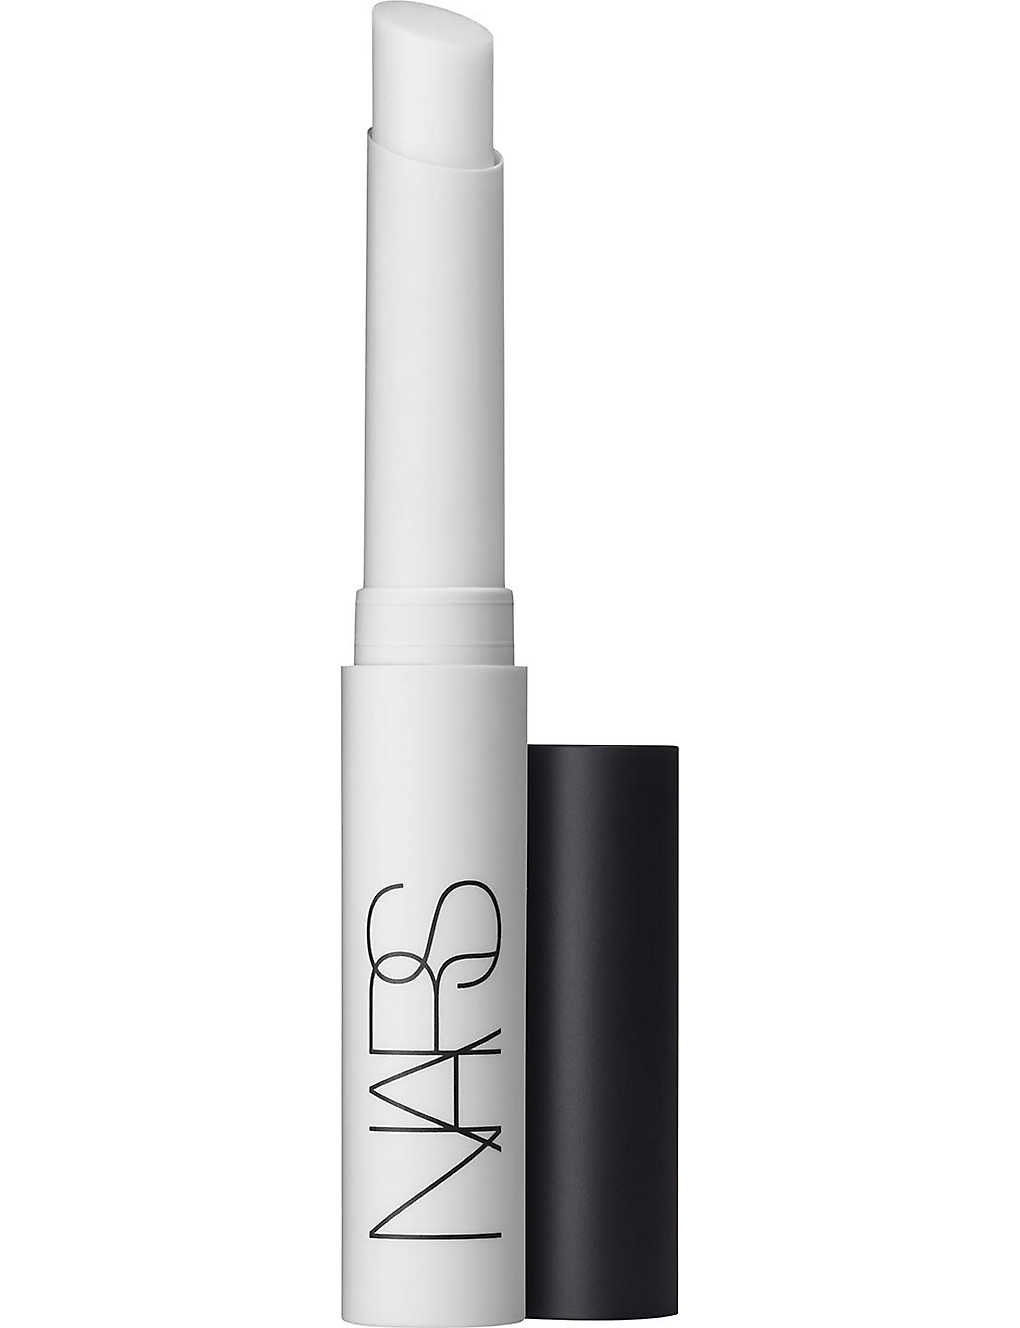 NARS: Instant Line & Pore Perfector